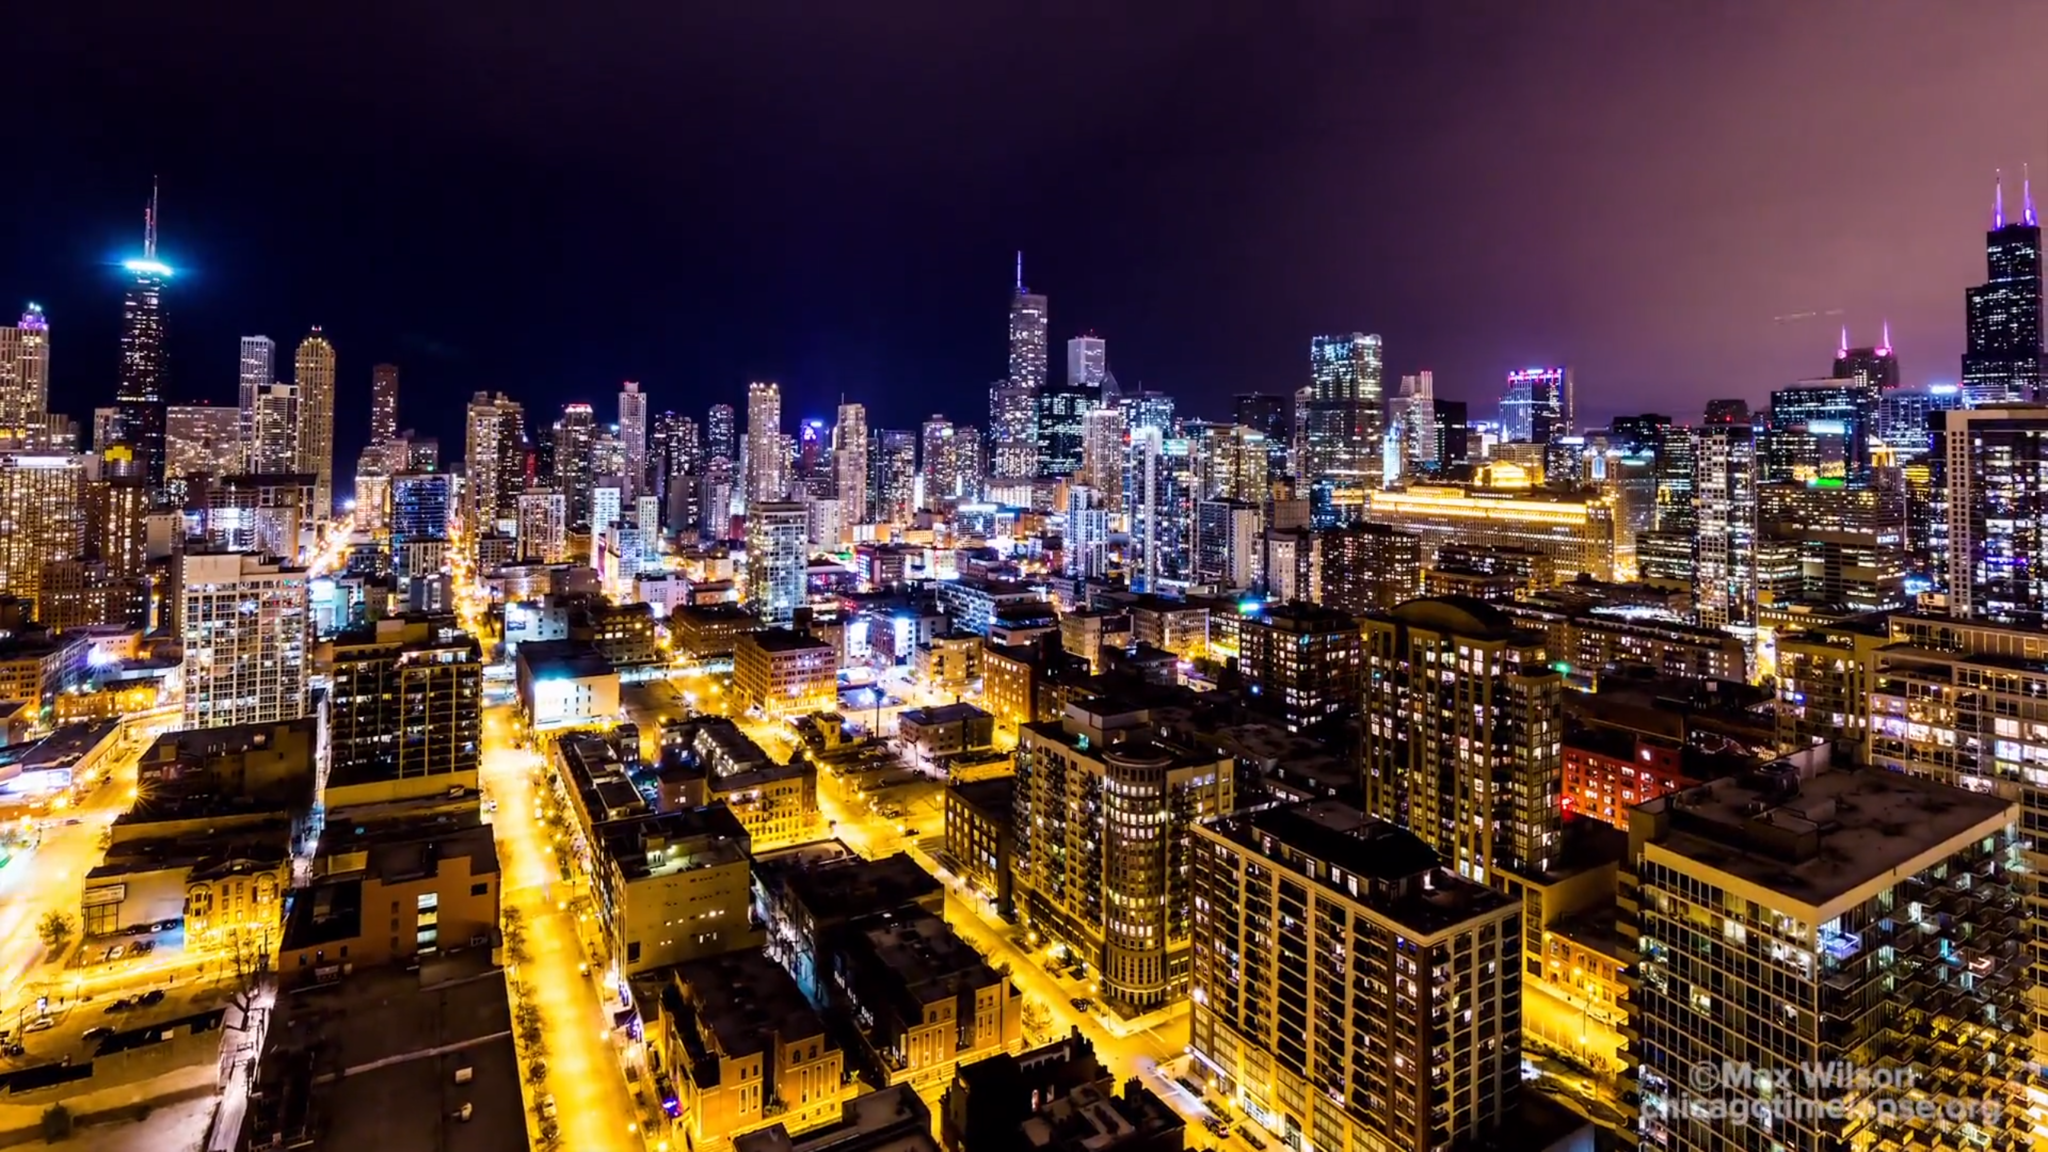 Chicagos Streets Of Gold Captured In Time Lapse Video